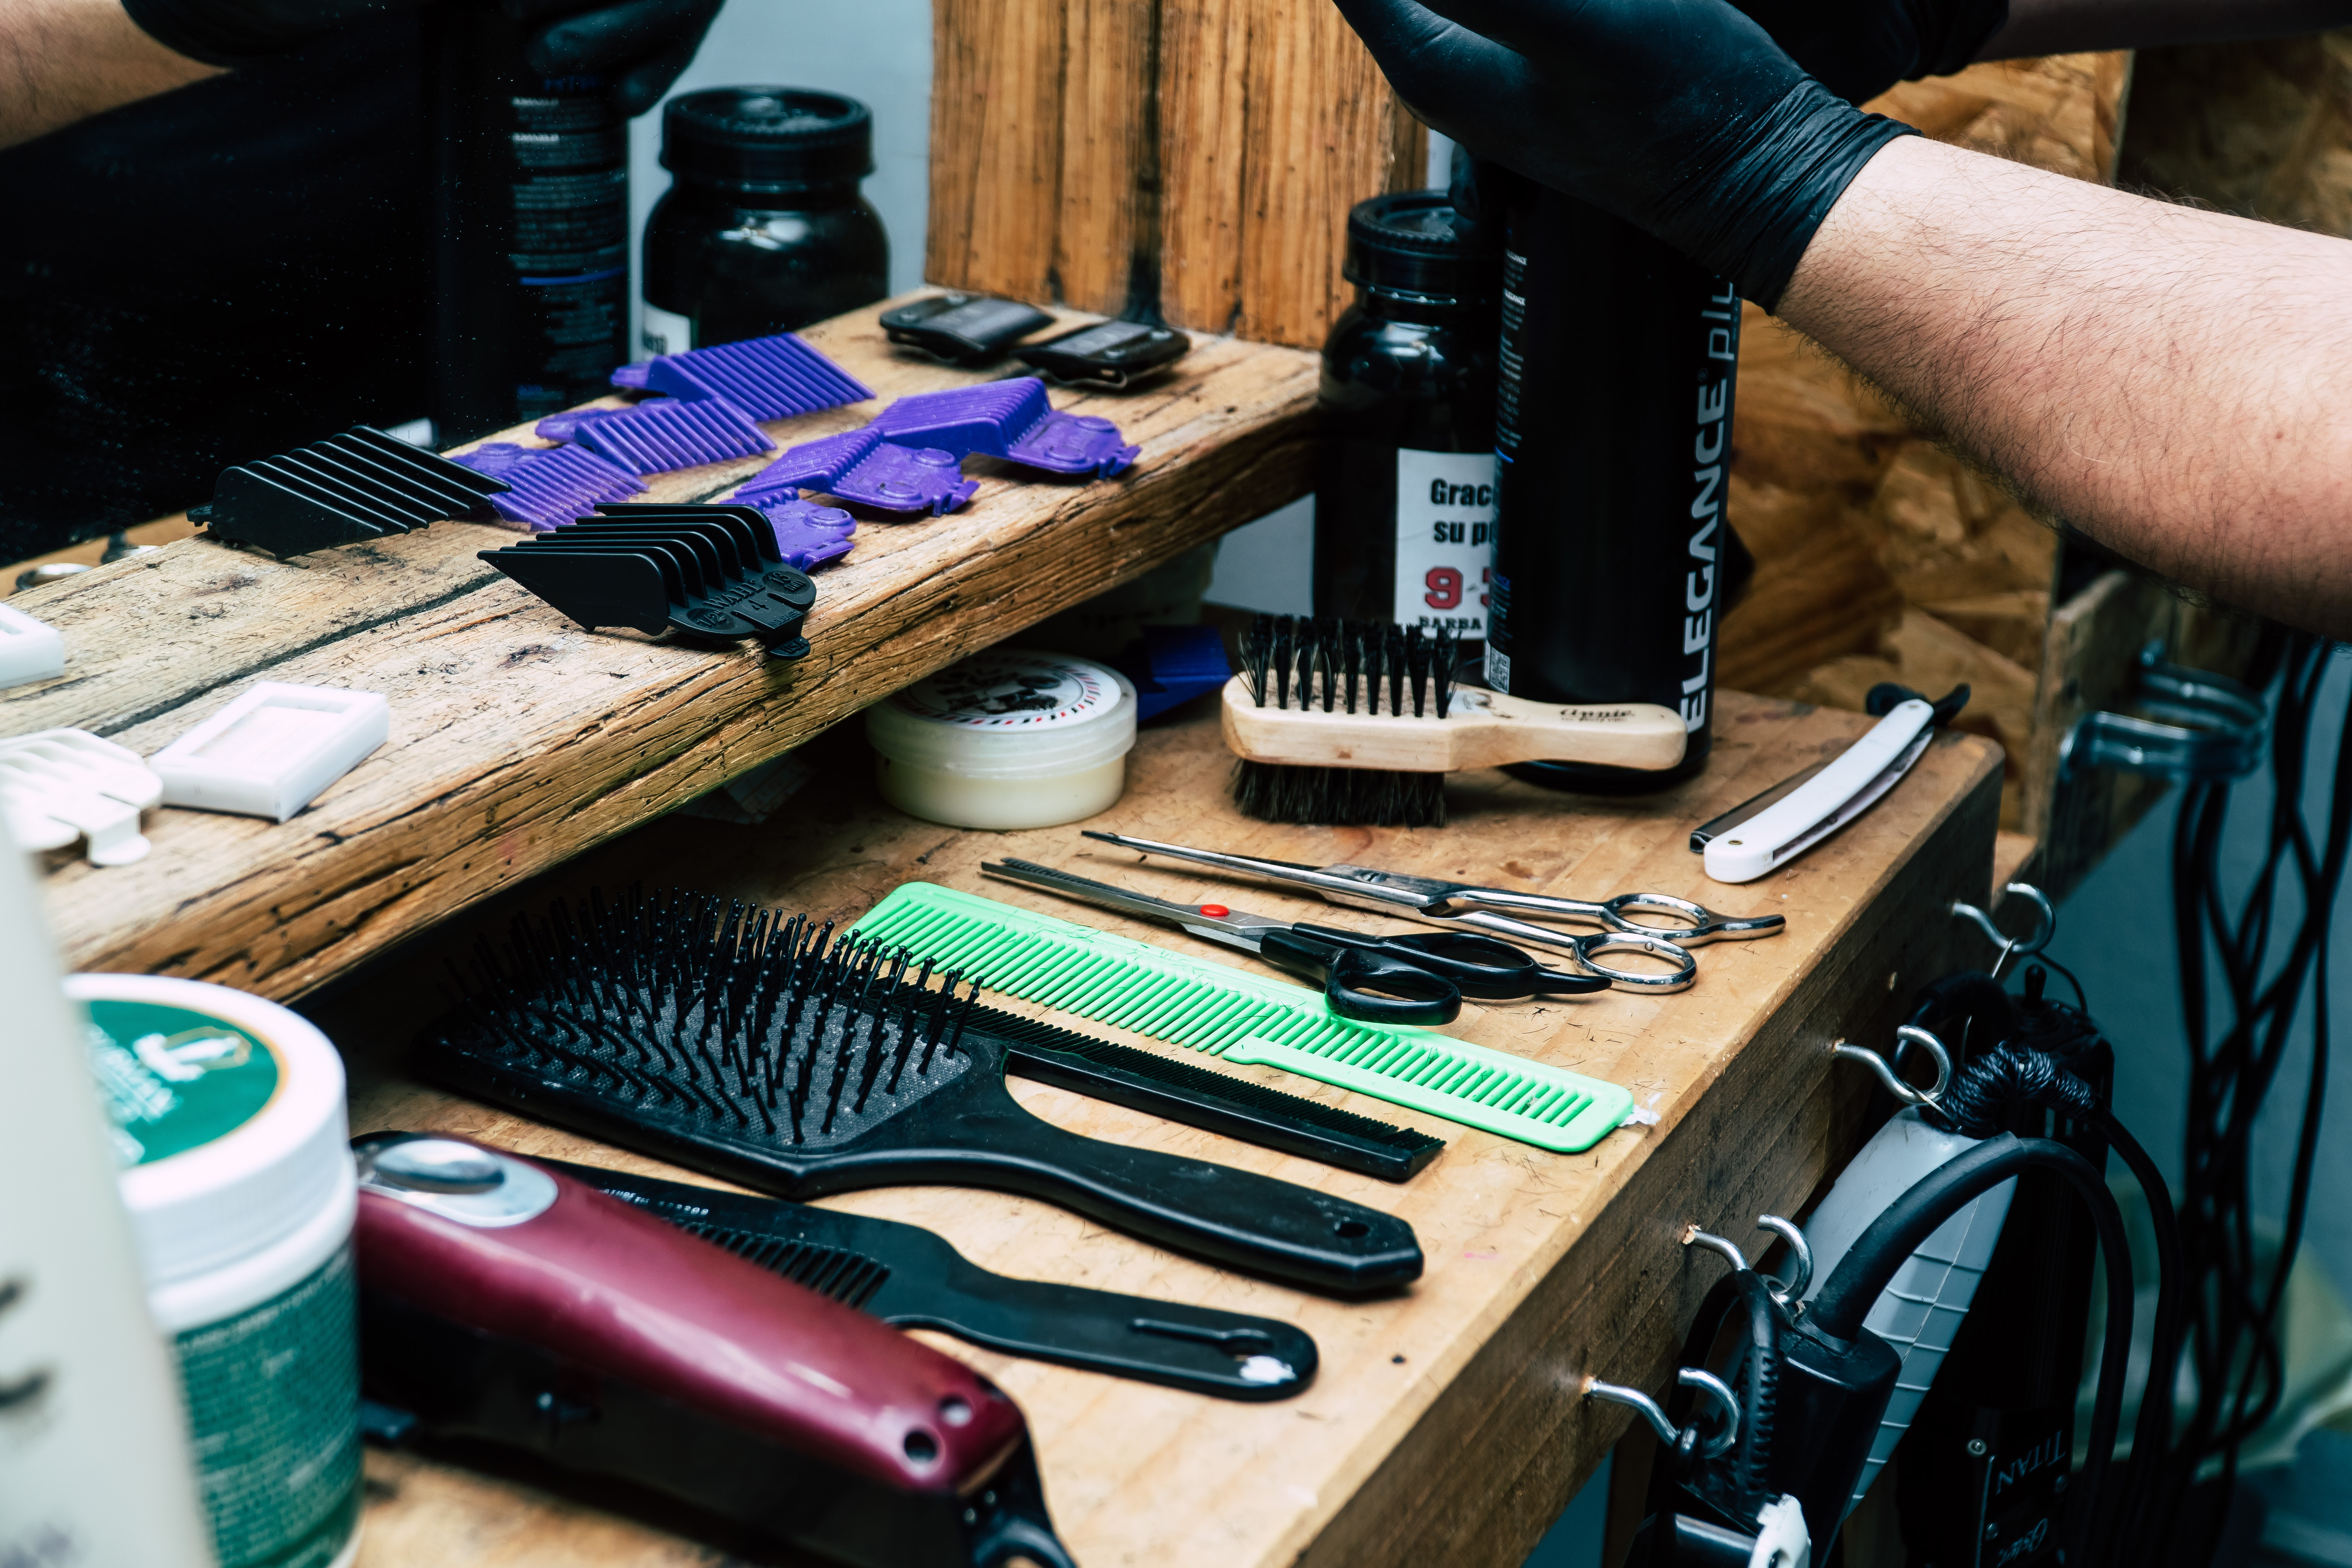 Barber's Tool on Table, Barber, Craft, Display, Hand, HQ Photo